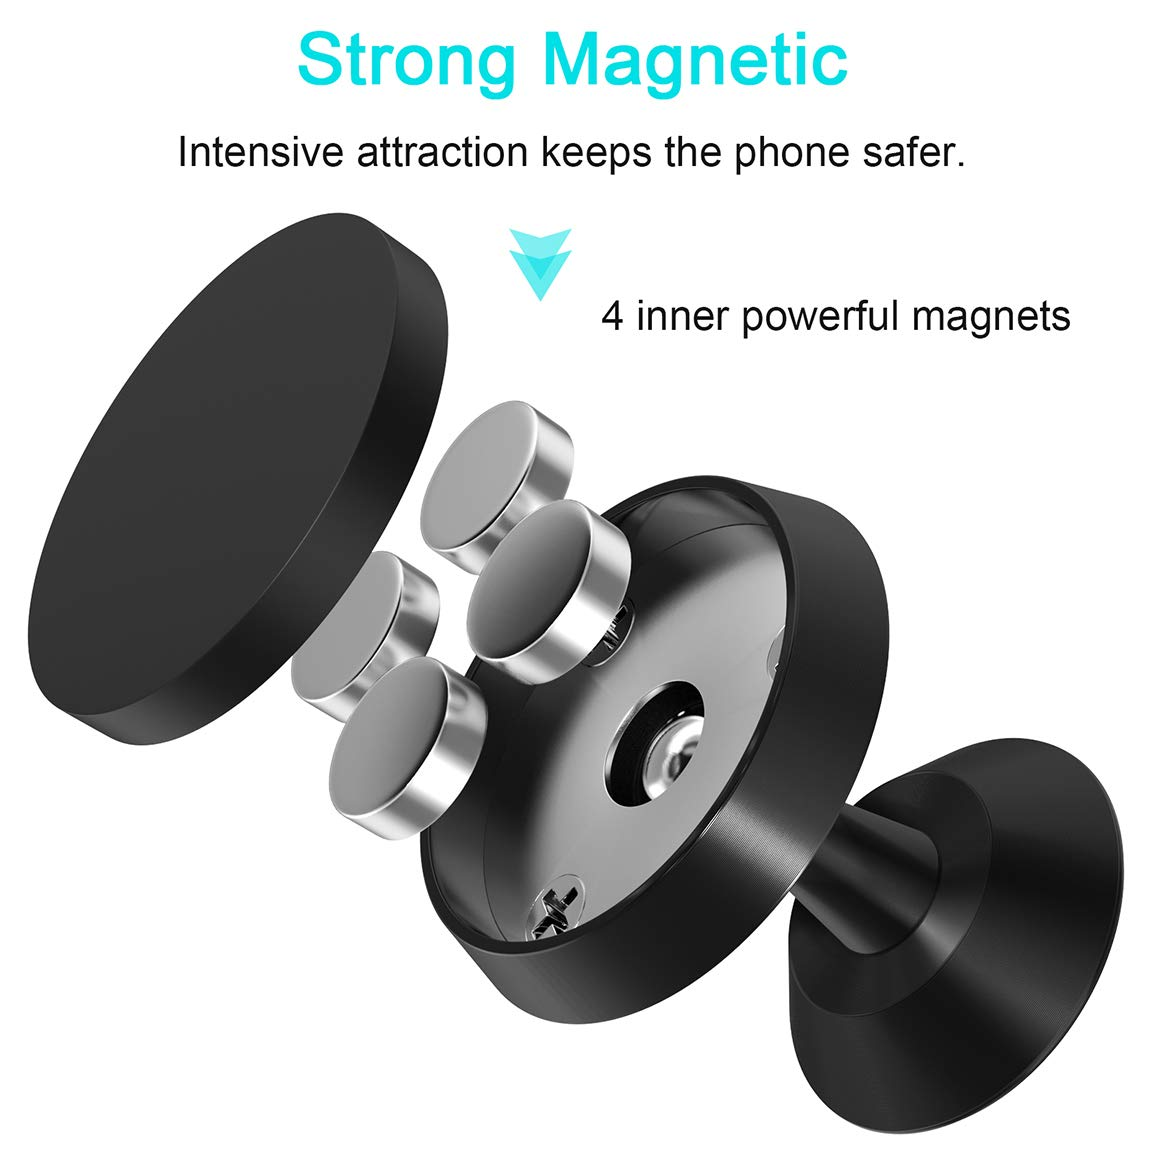 Universal Magnetic Cell Phone Holder for Car Curllon VGEW-FT01 Car Phone Mount